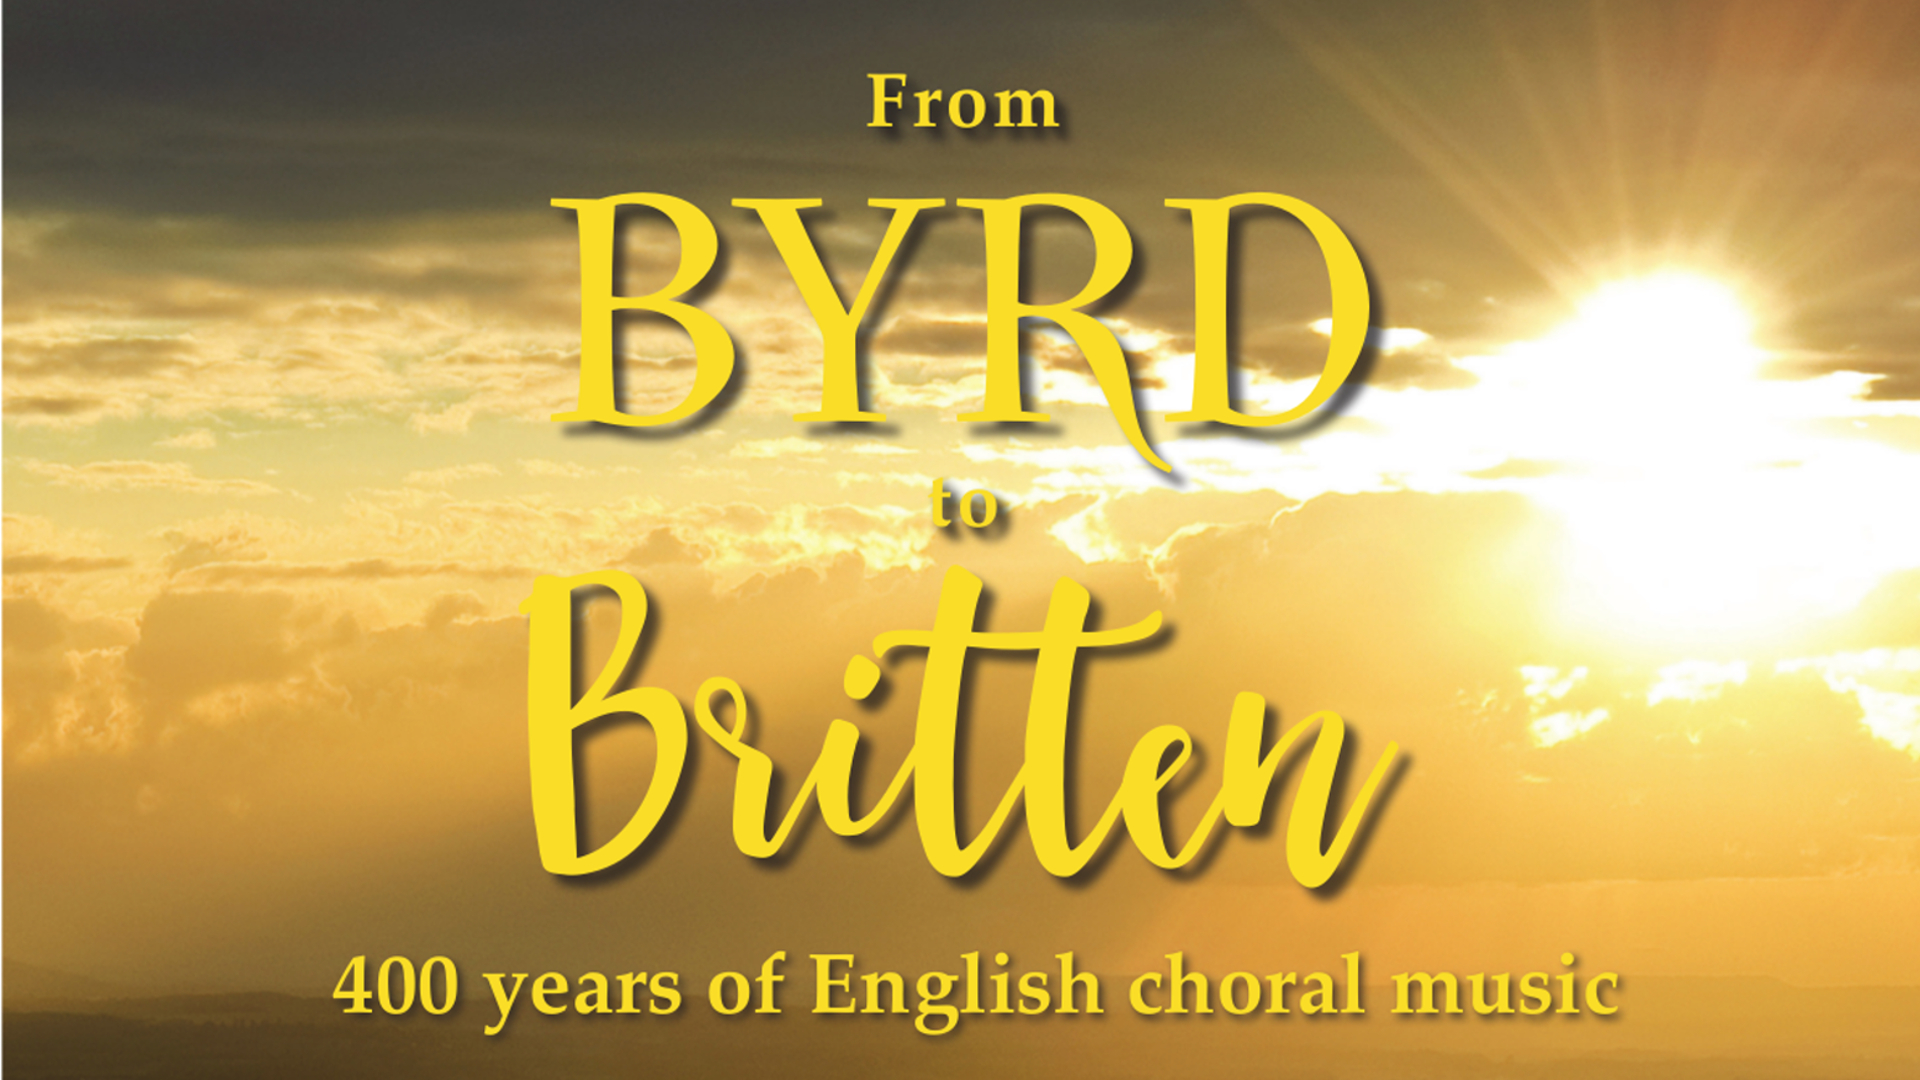 Byrd to Britten title